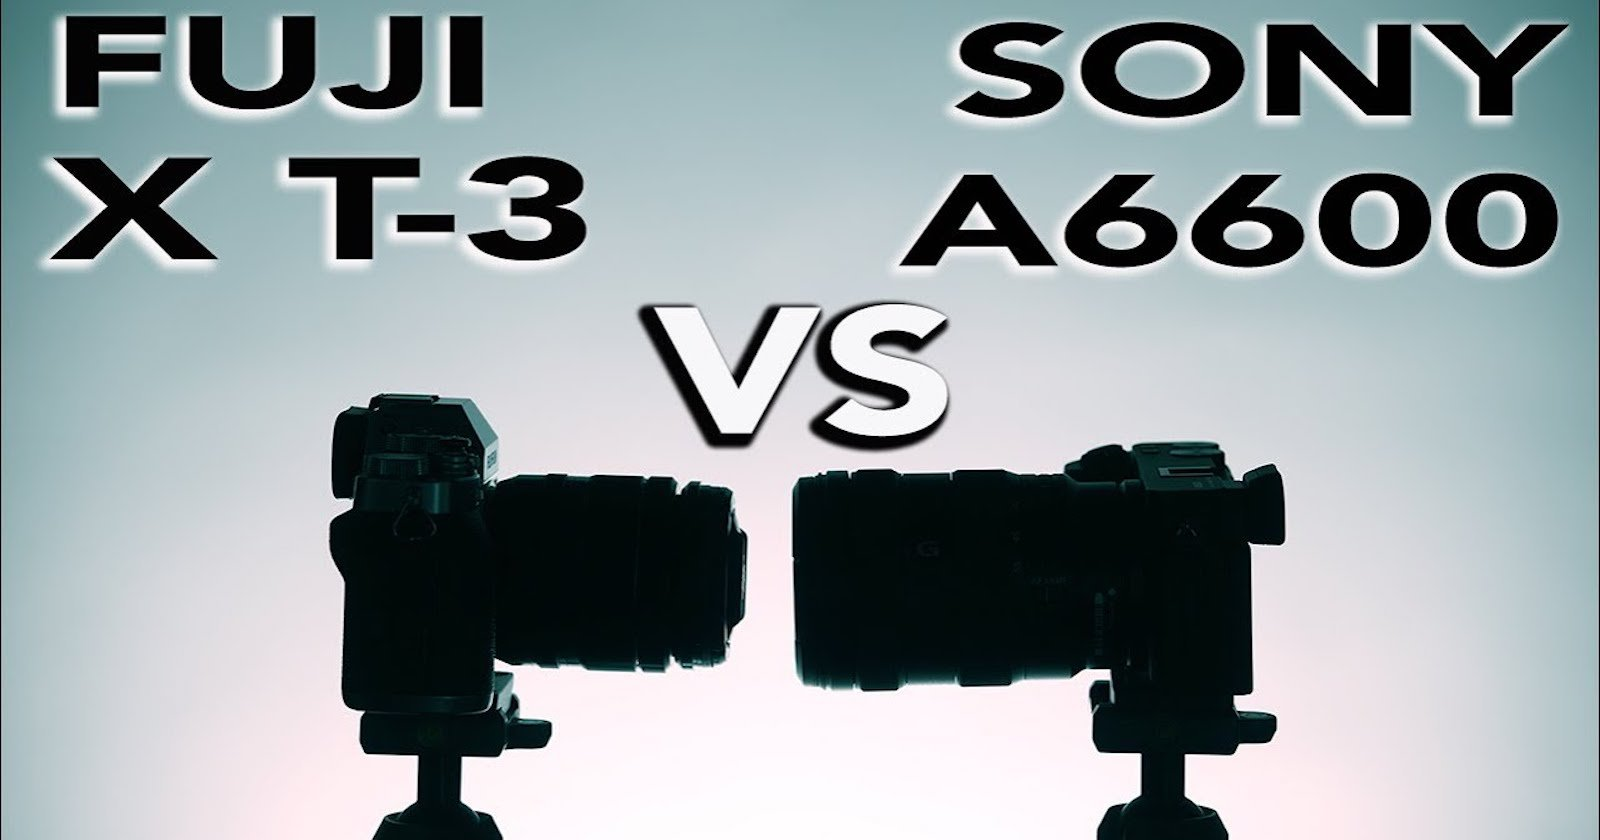 Fuji X-T3 vs Sony a6600: Comparing Autofocus, High ISO and More